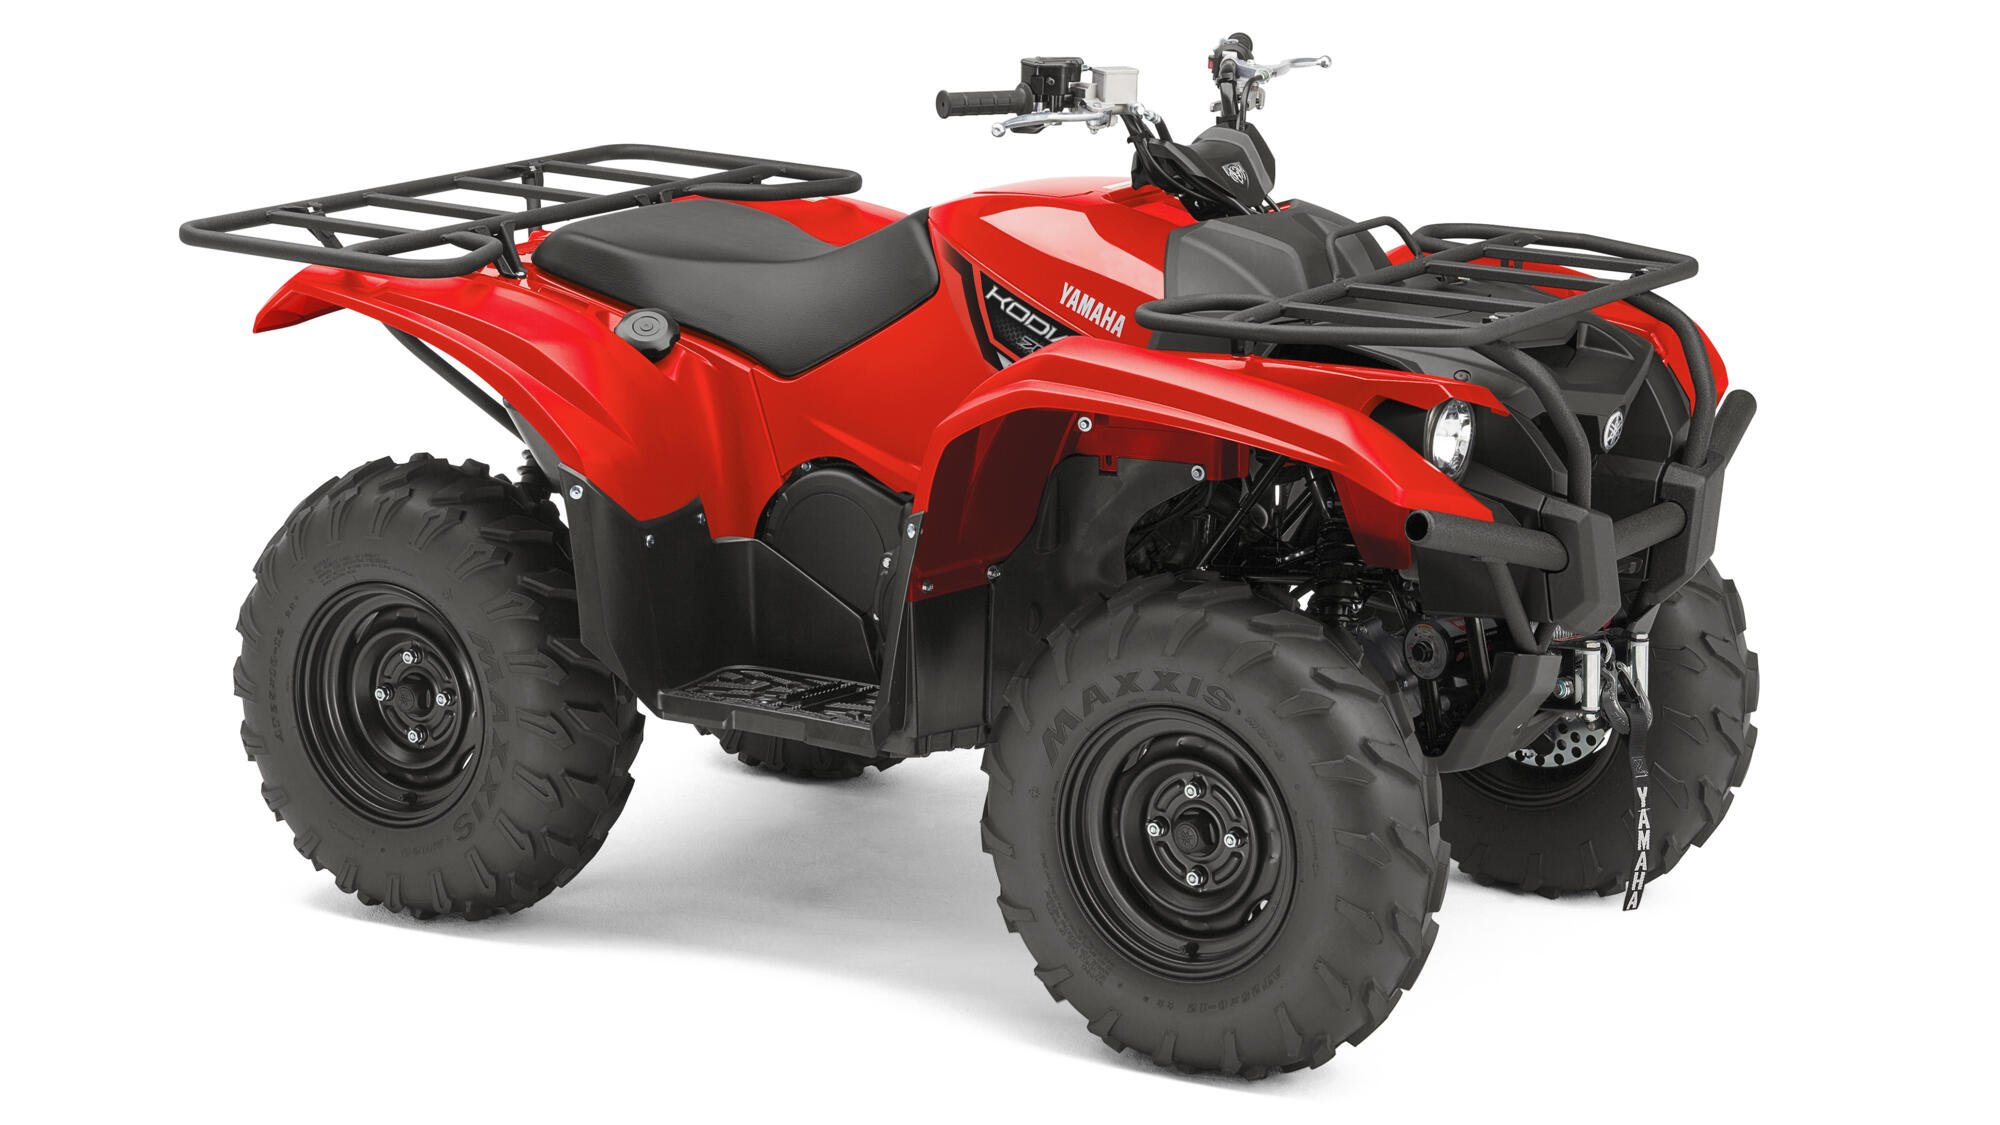 kodiak 700 atv yamaha motor. Black Bedroom Furniture Sets. Home Design Ideas